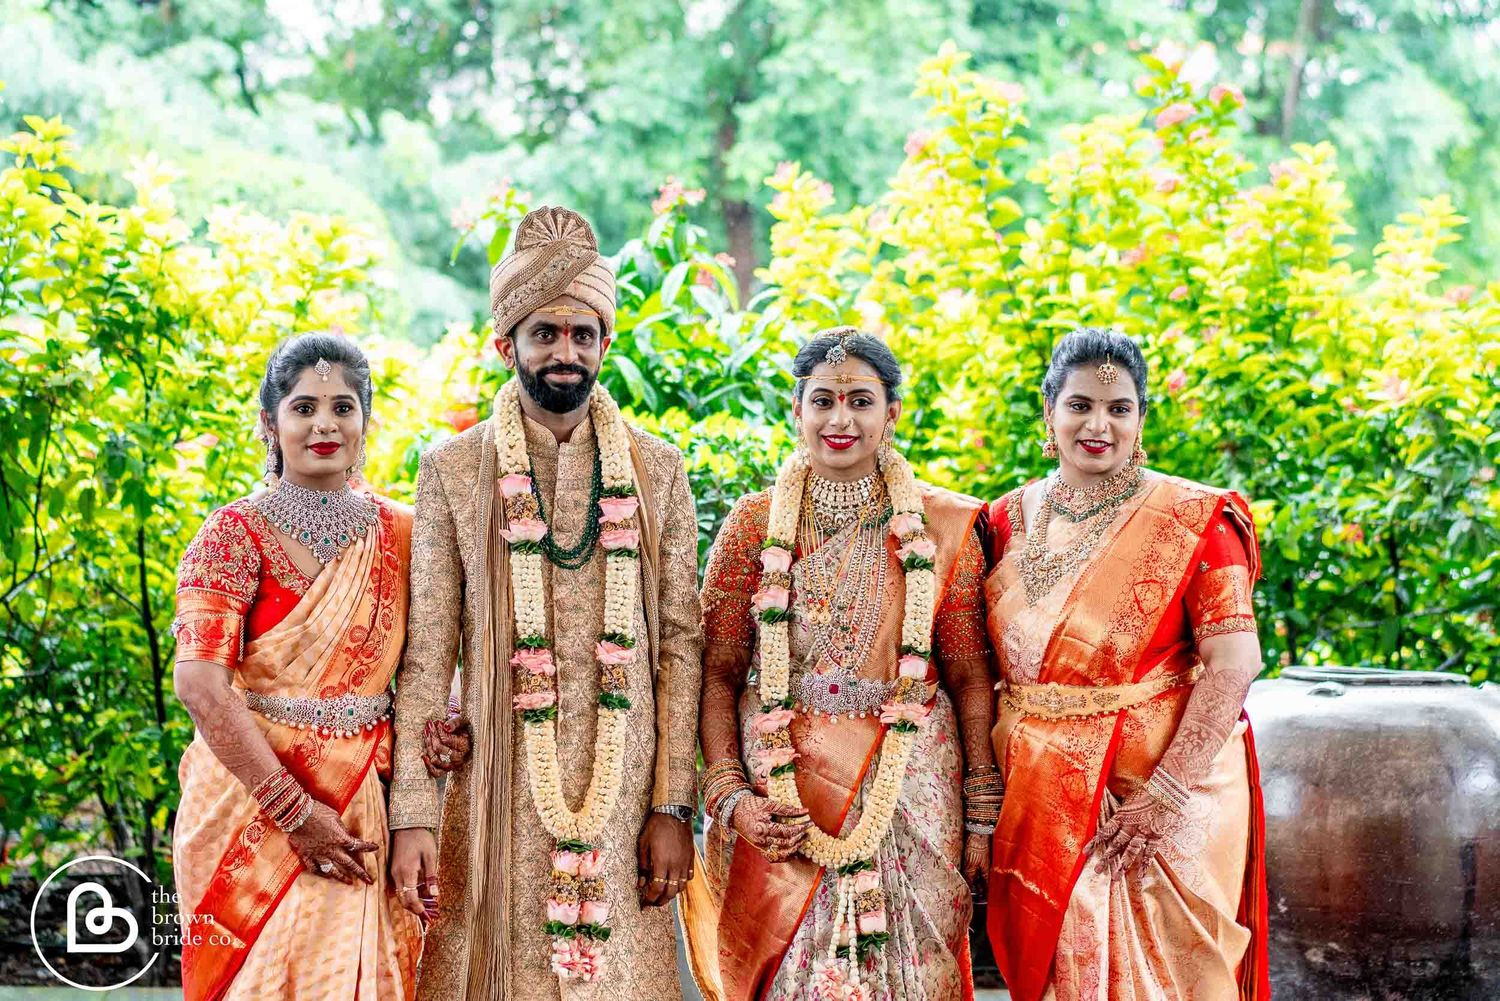 hyderabad wedding | marriage photography in Hyderabad, best photographers in Hyderabad